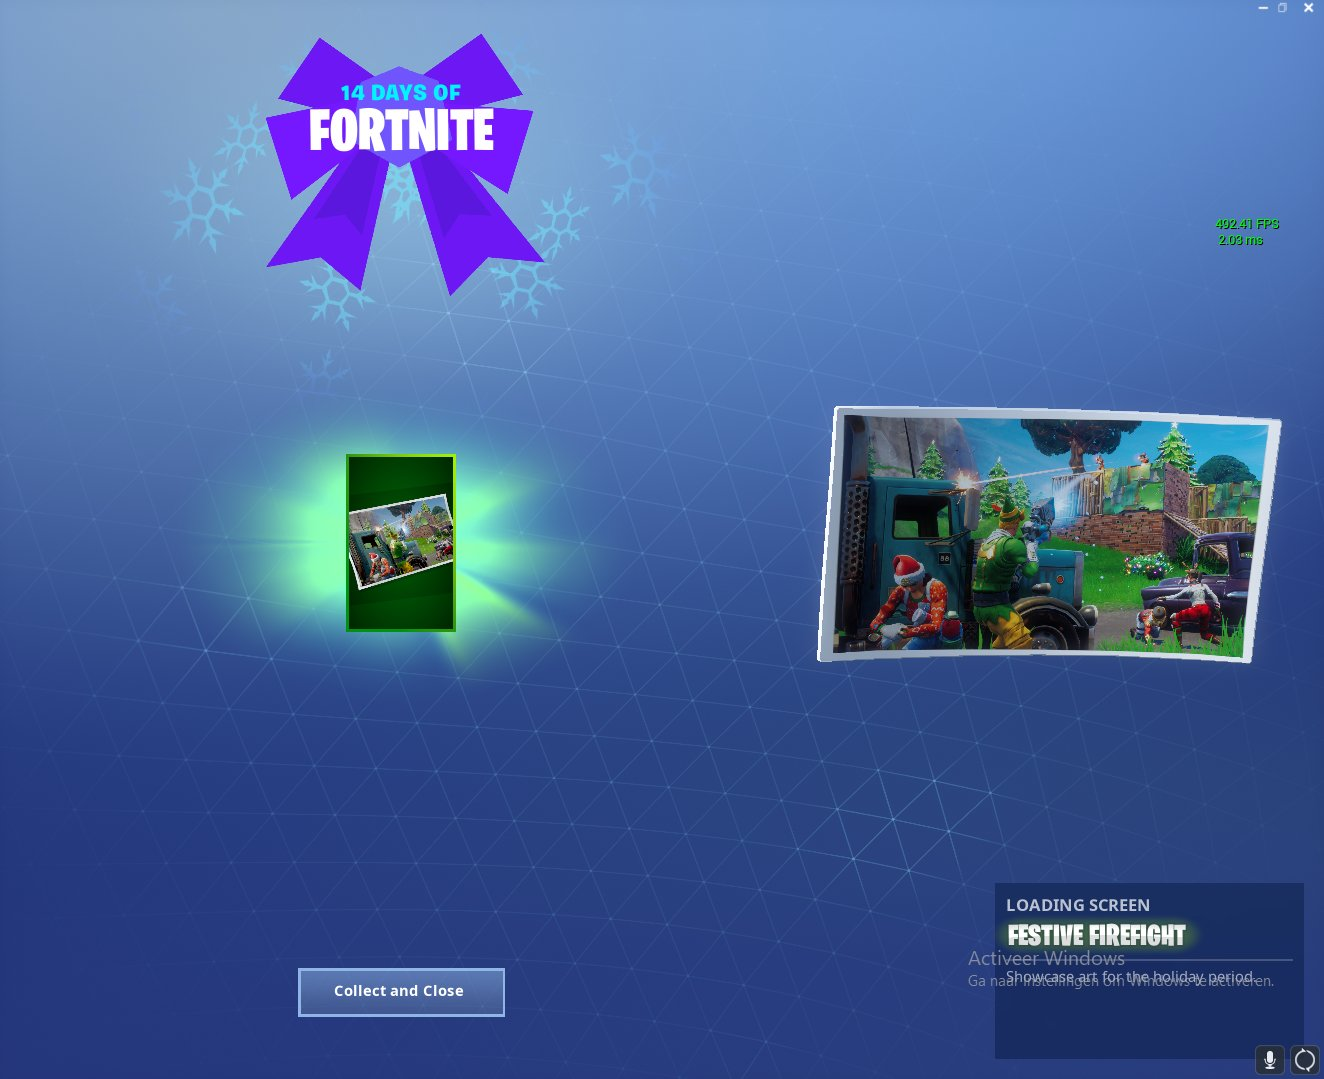 14 days of Fortnite Challenges Day 2 Reward